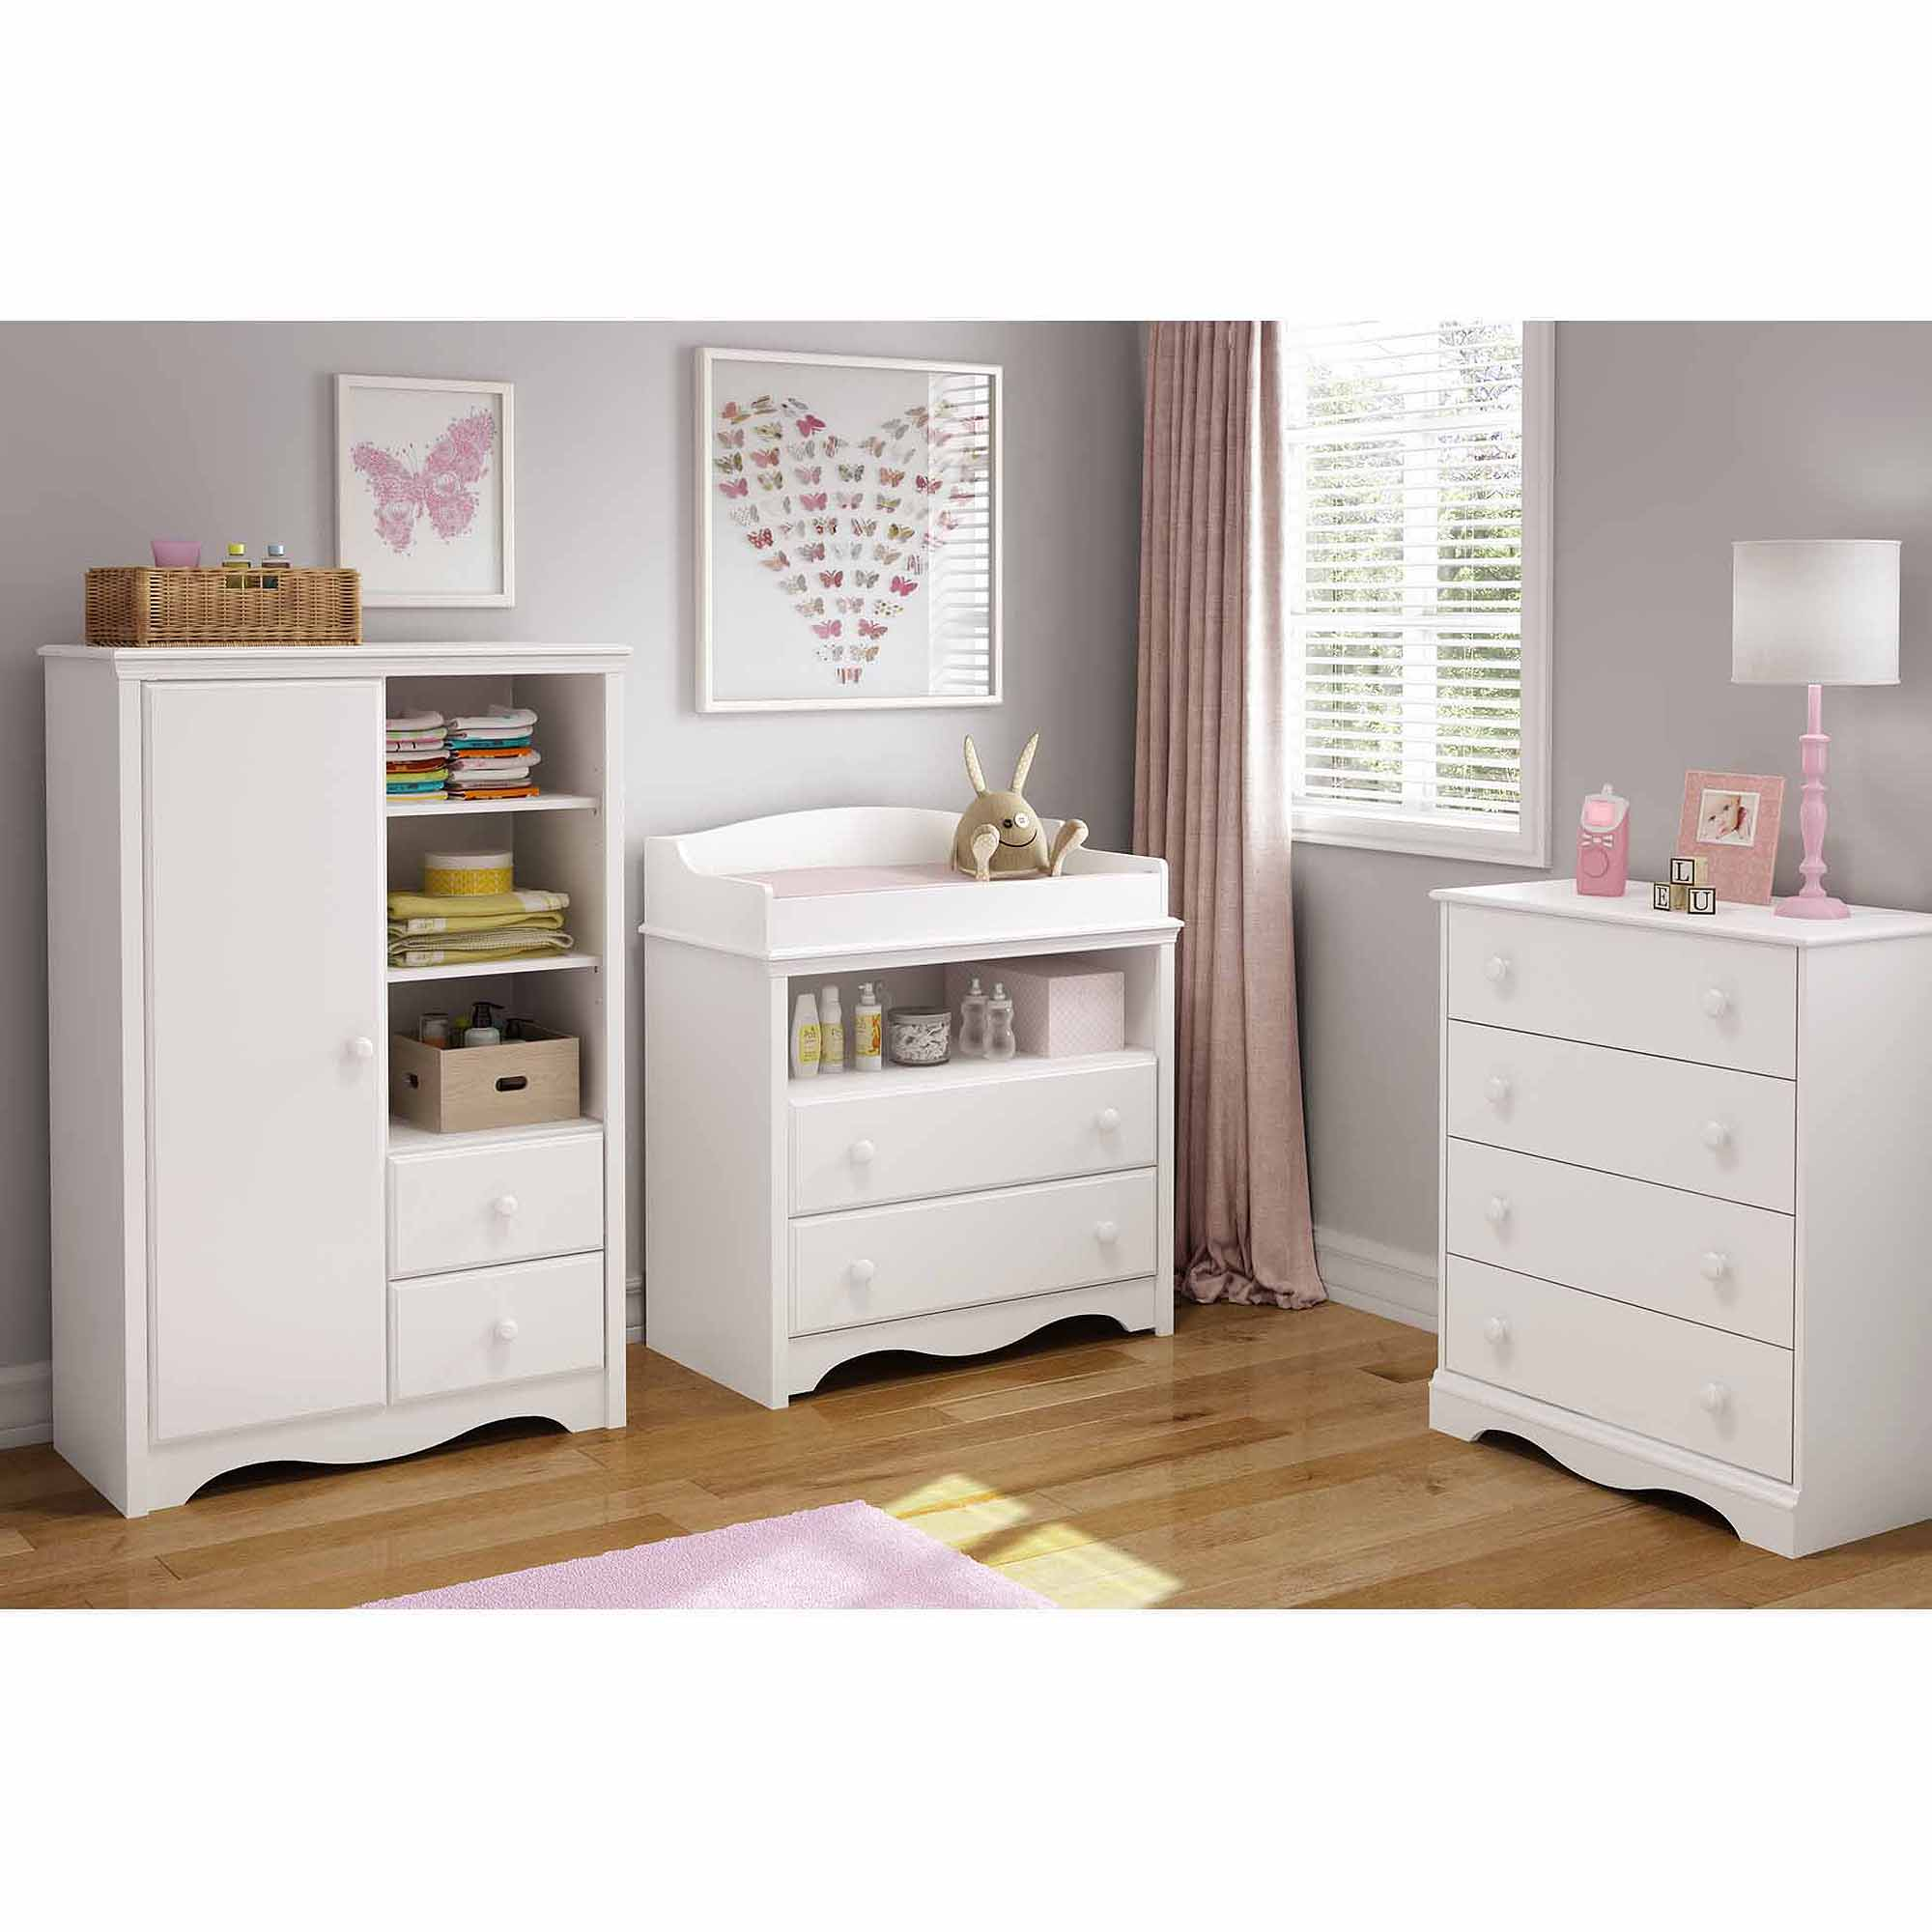 changing babyletto pdp furniture reviews dresser gelato table allmodern combo